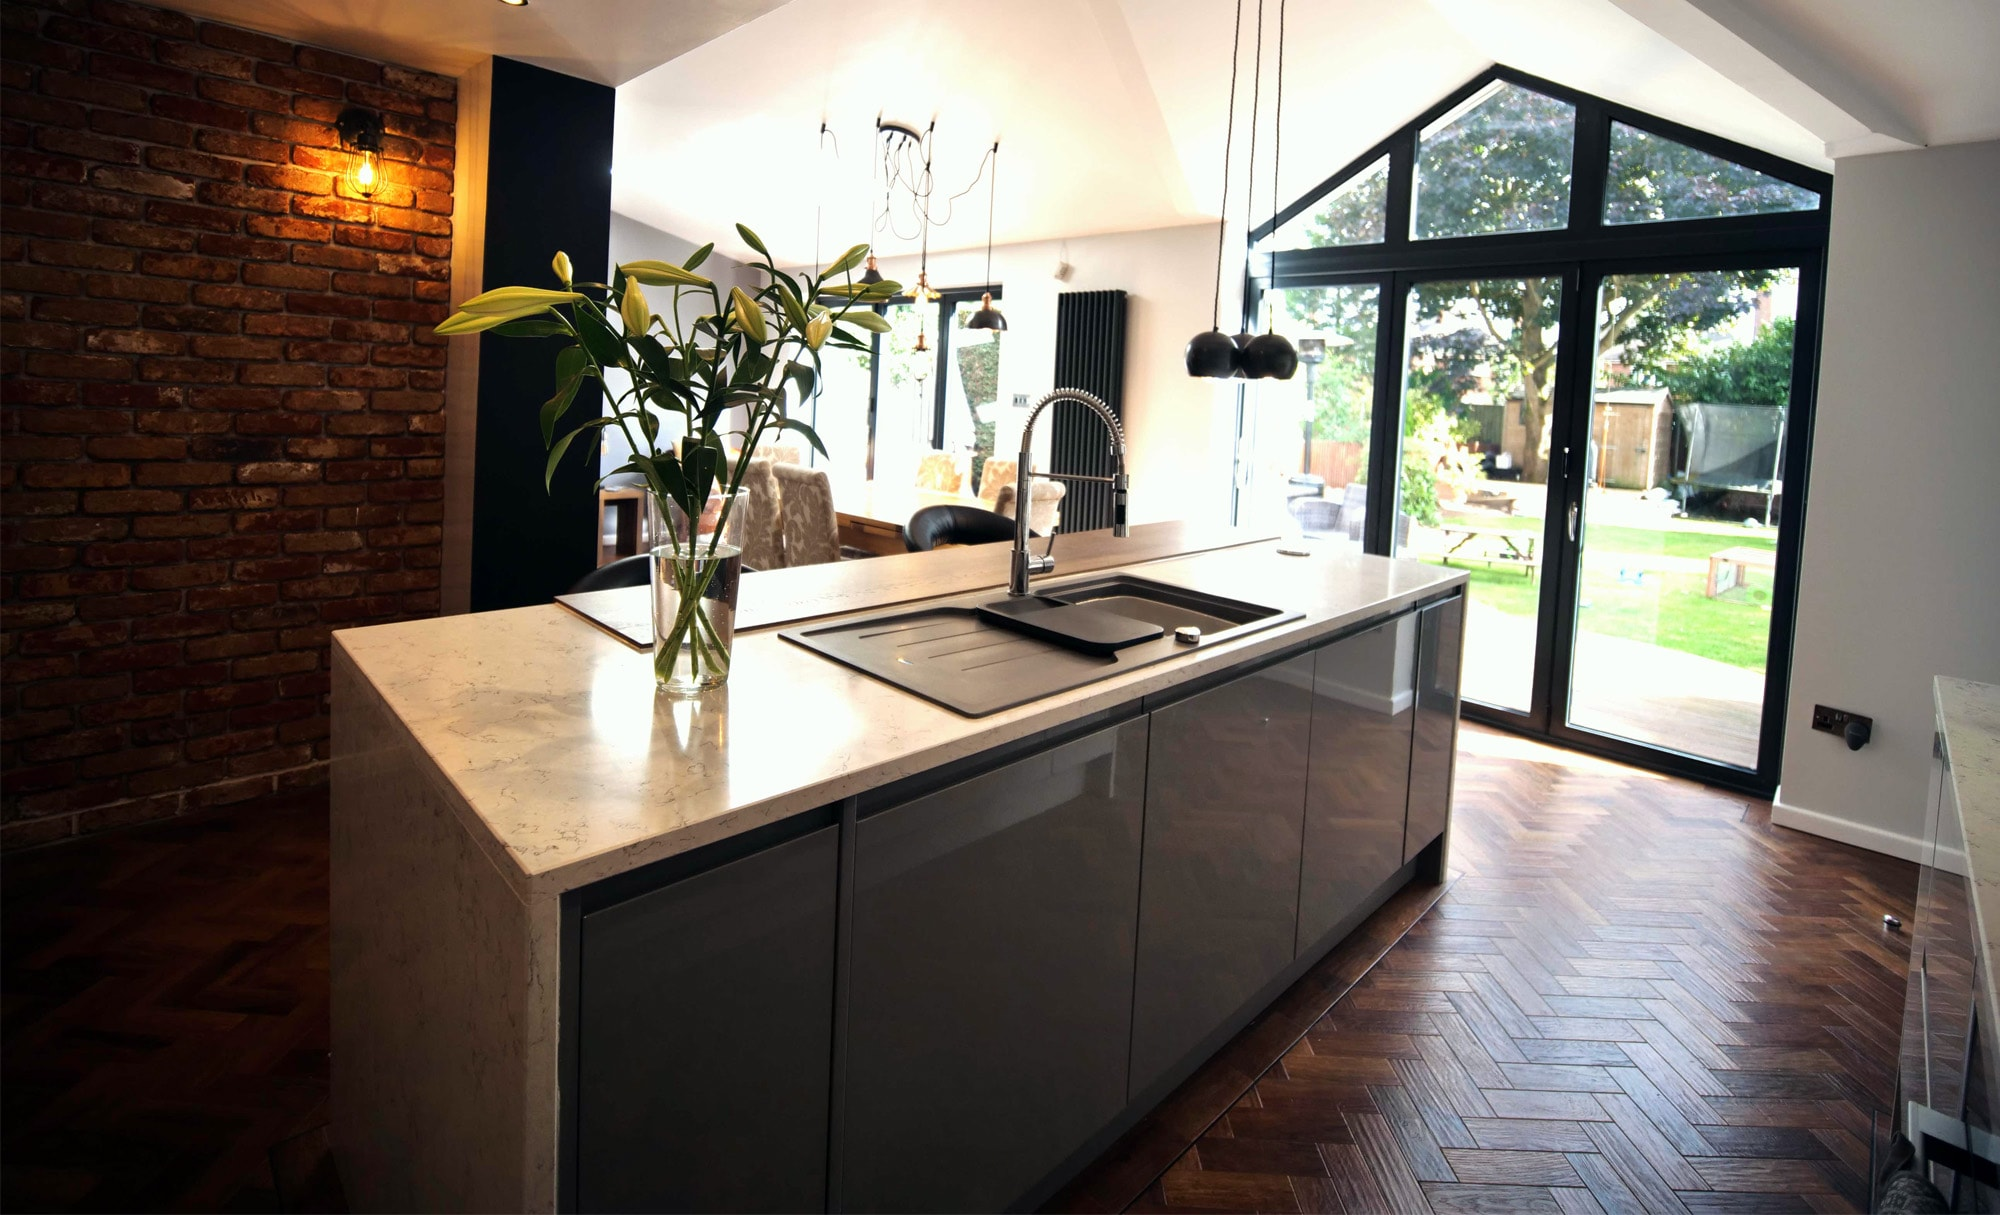 The Gallery Strada Gloss Light Grey & Dust Grey Kitchen for Mr & Sargent of Hagley